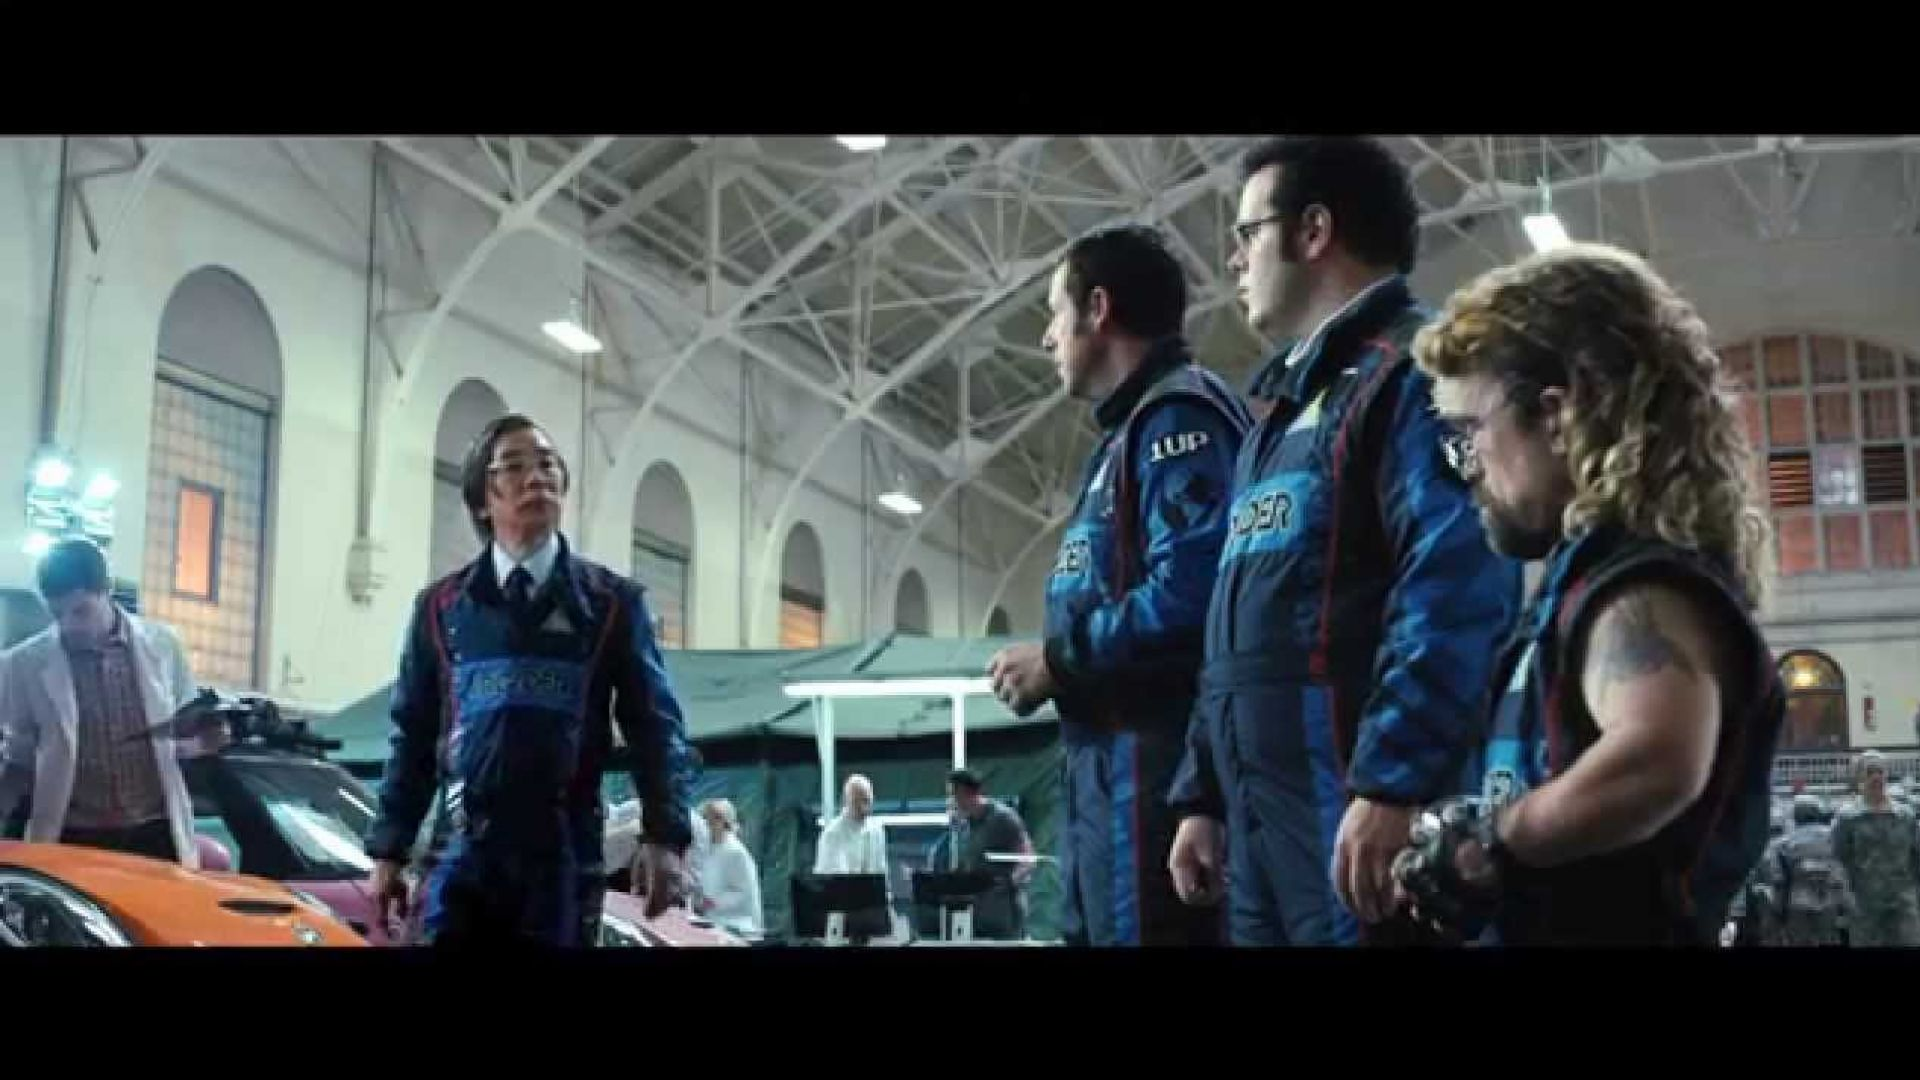 Aliens send real-life video games to earth to destroy us in new Pixels trailer